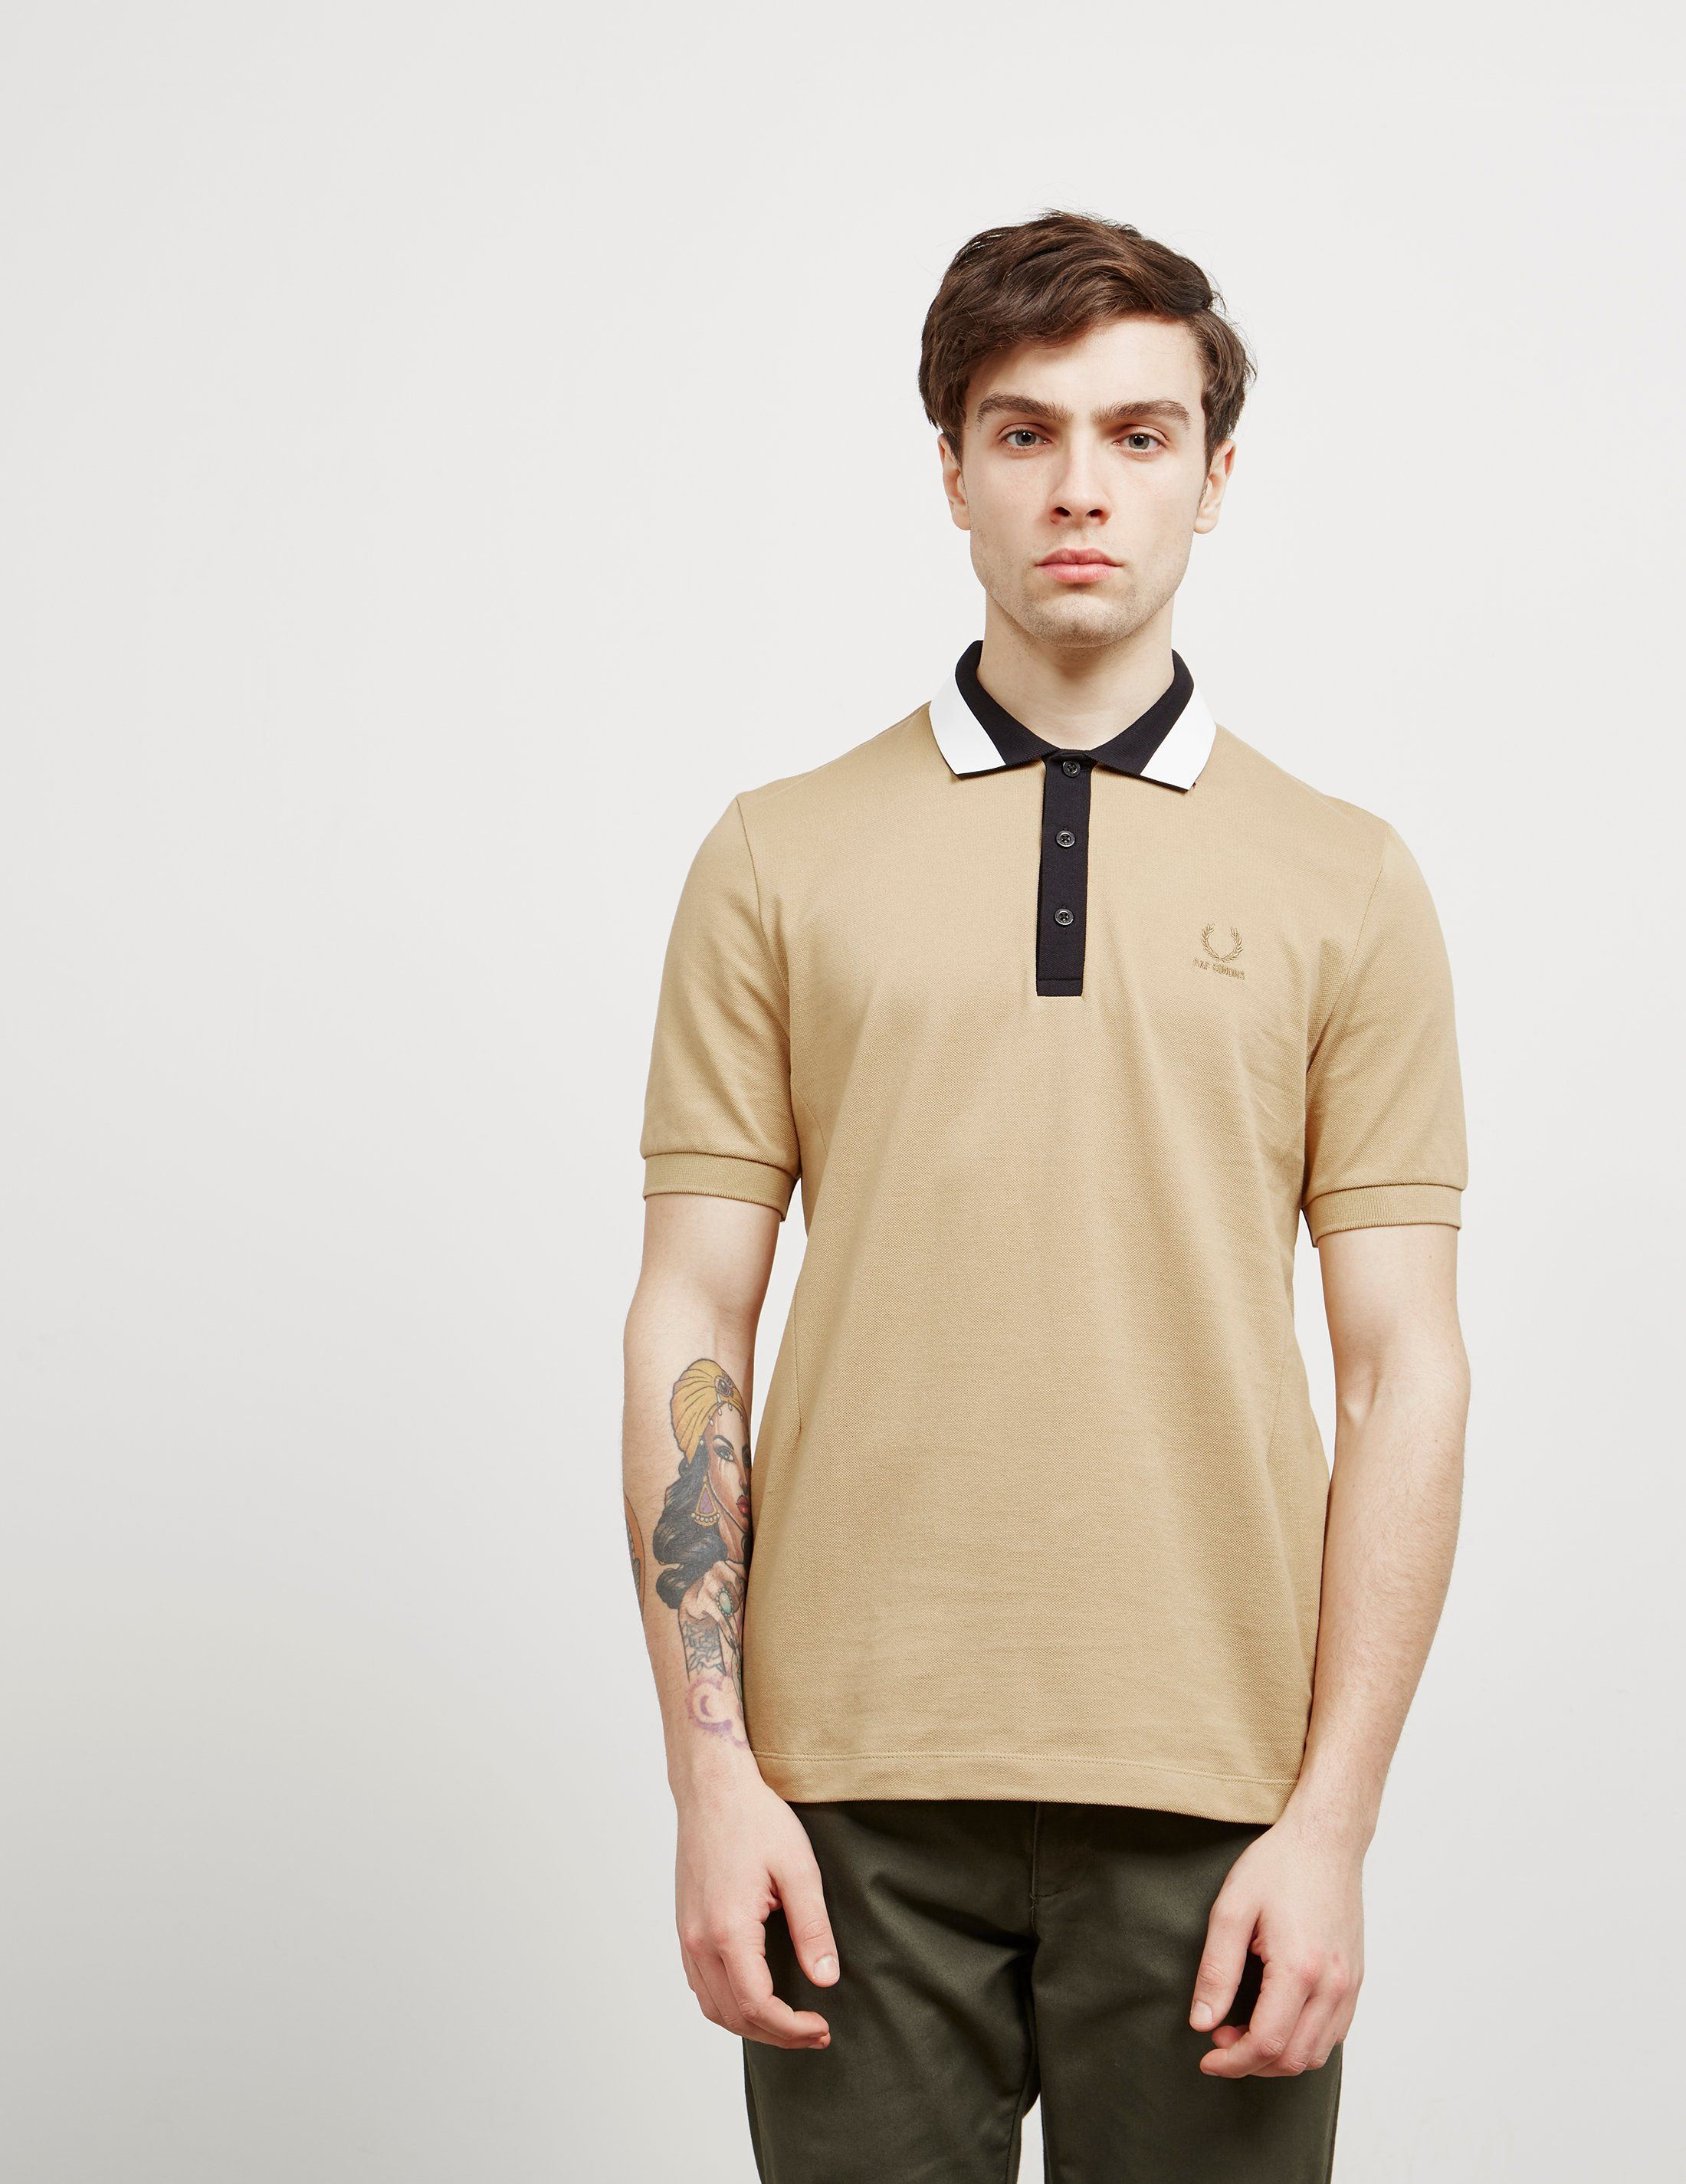 Fred Perry x Raf Simons Taped Collar Short Sleeve Polo Shirt